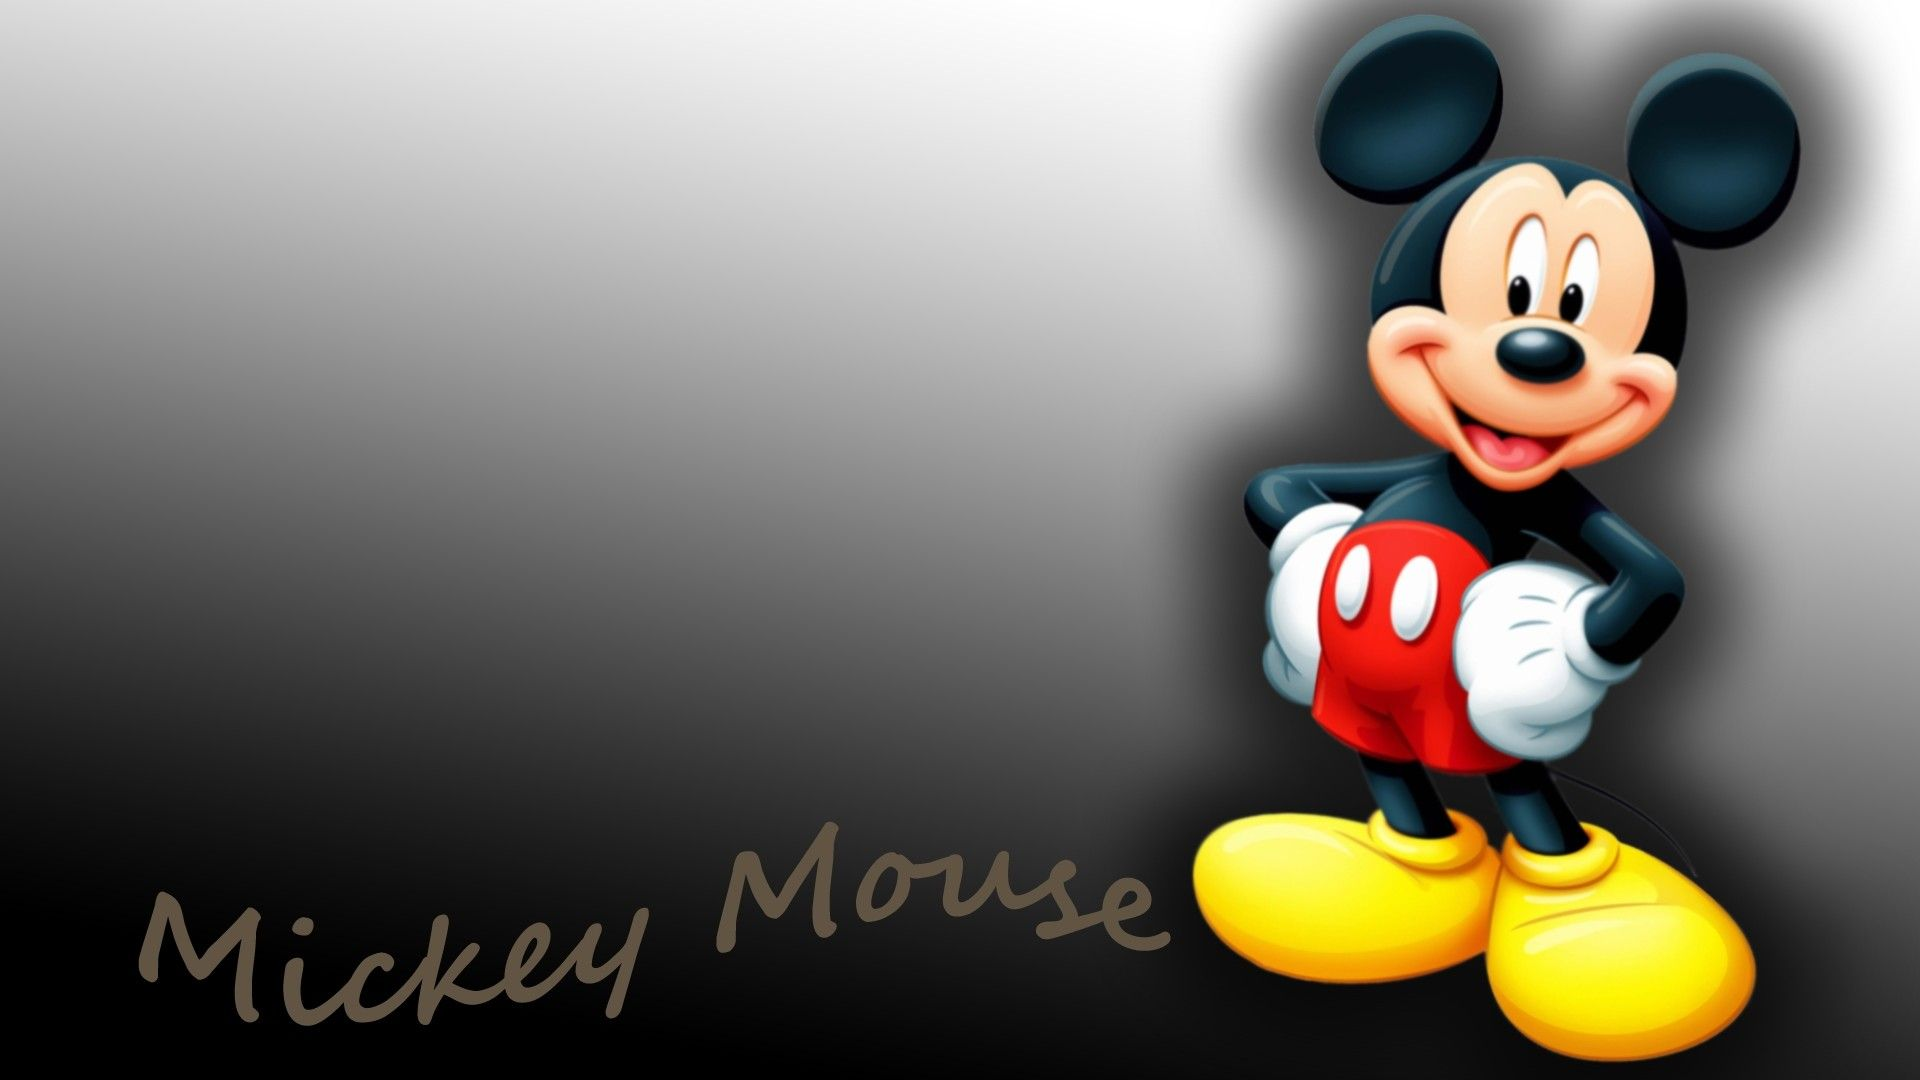 mickey mouse wallpaper for iphone